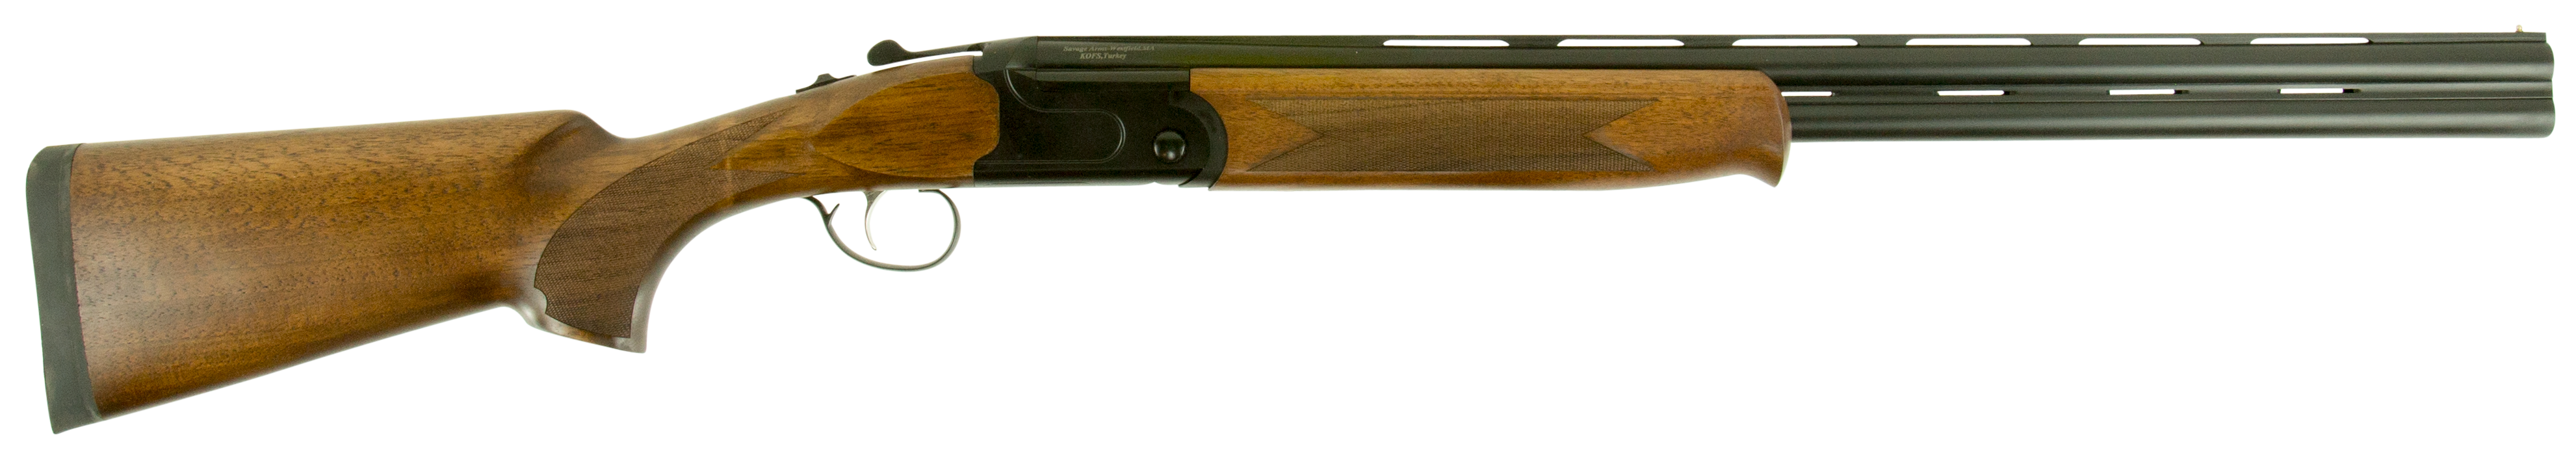 Stevens 555 Compact Over/Under Shotgun 2.75'' 28 Gauge 24'' Black Aluminum Alloy - Turkish Walnut